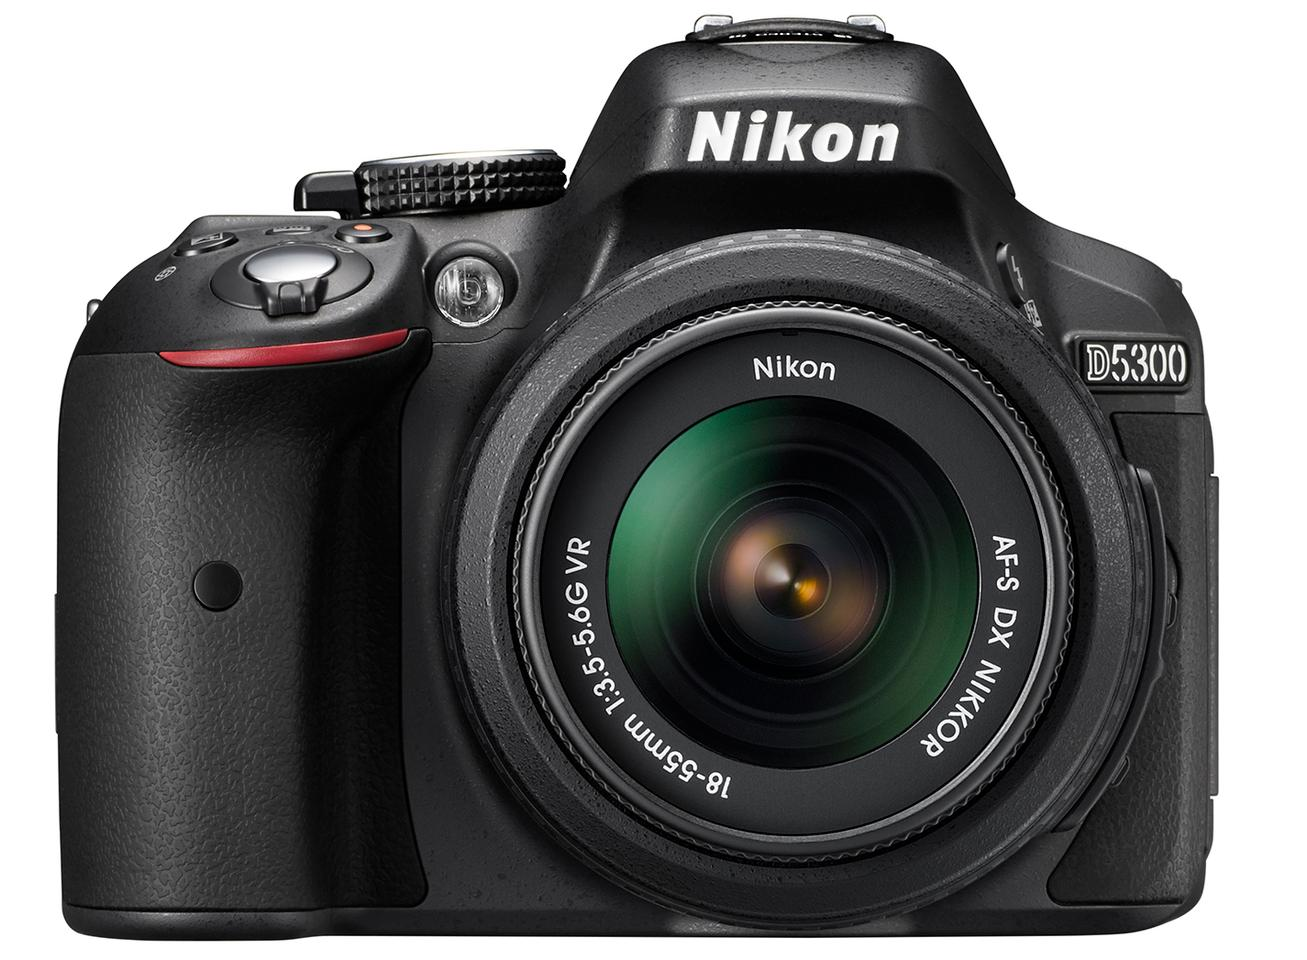 The D5300 is the first DSLR from Nikon to include built-in Wi-FI and GPS capabilities